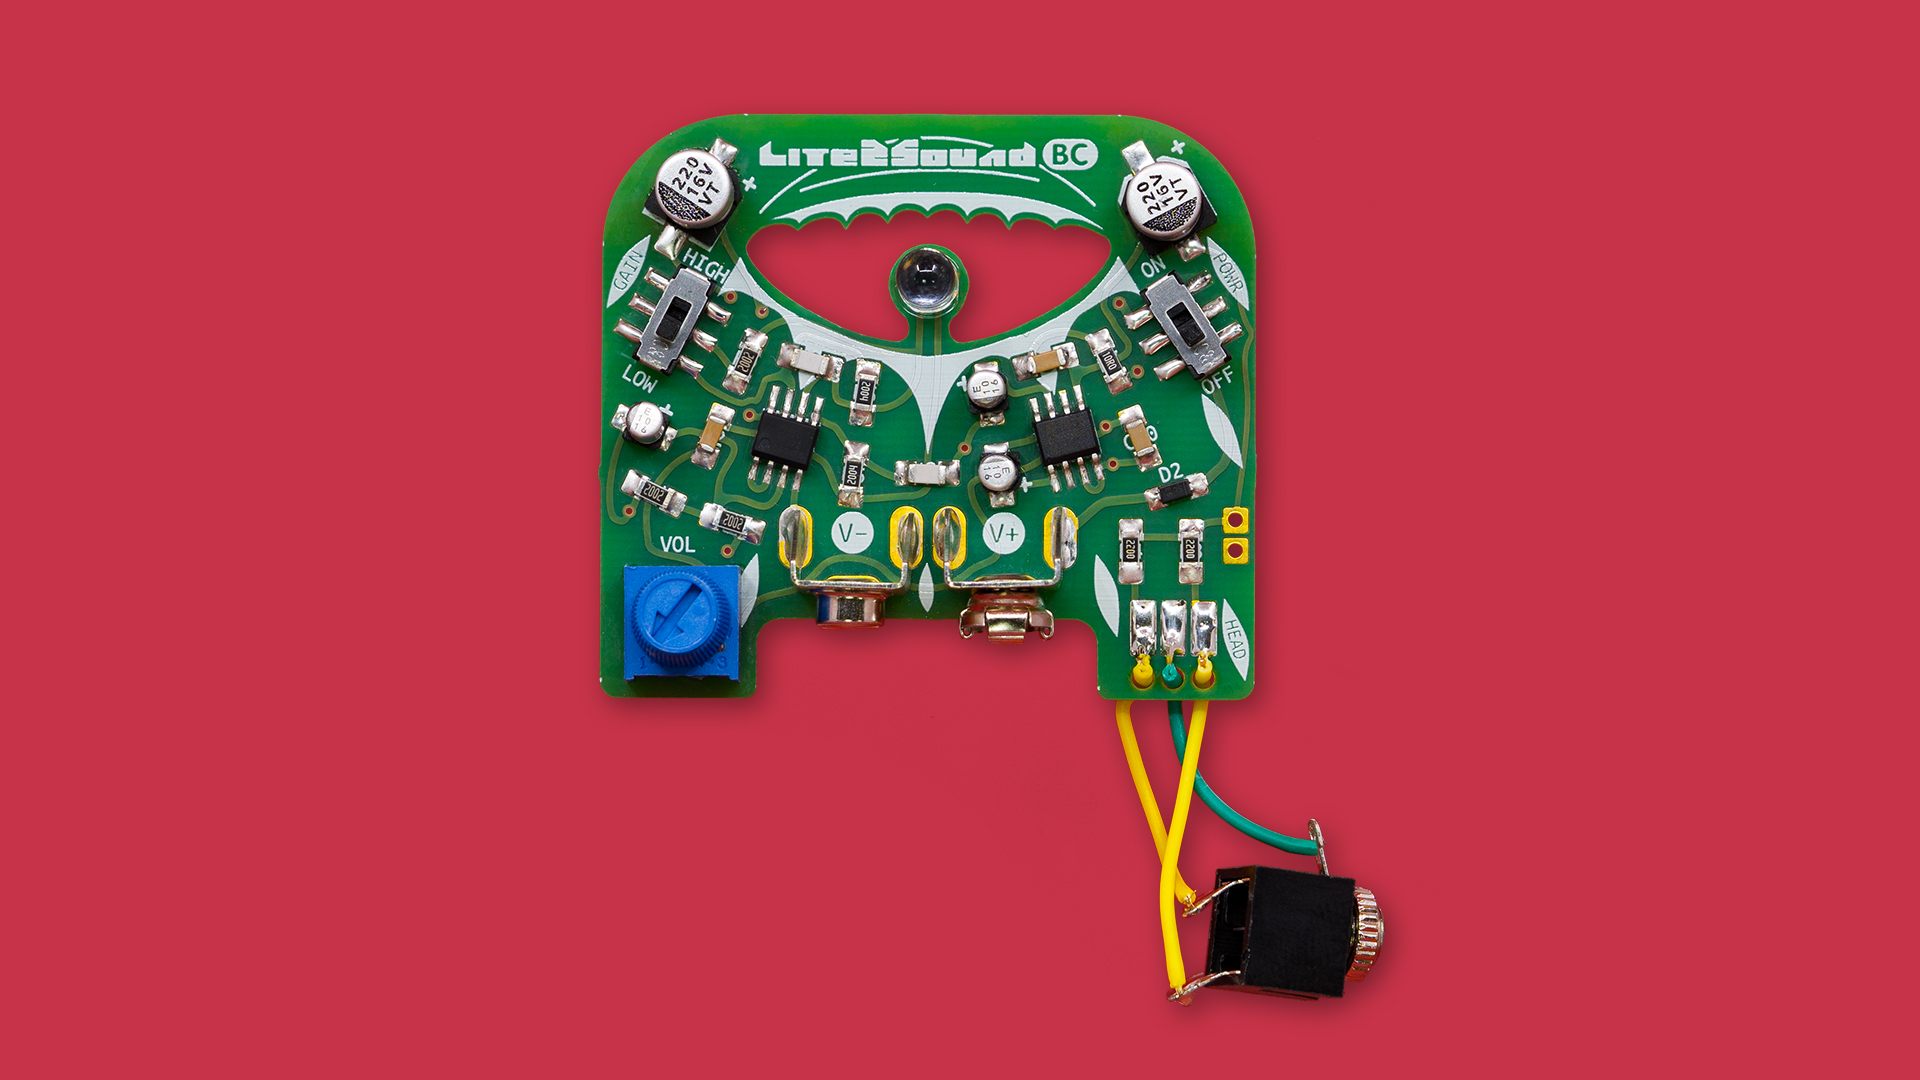 Boldport Club Electronic Kits Subscription Electronics Projects The Cut Off For Receiving Upcoming Project Is In 10 Days 23 Hours 59 Minutes And 41 Seconds